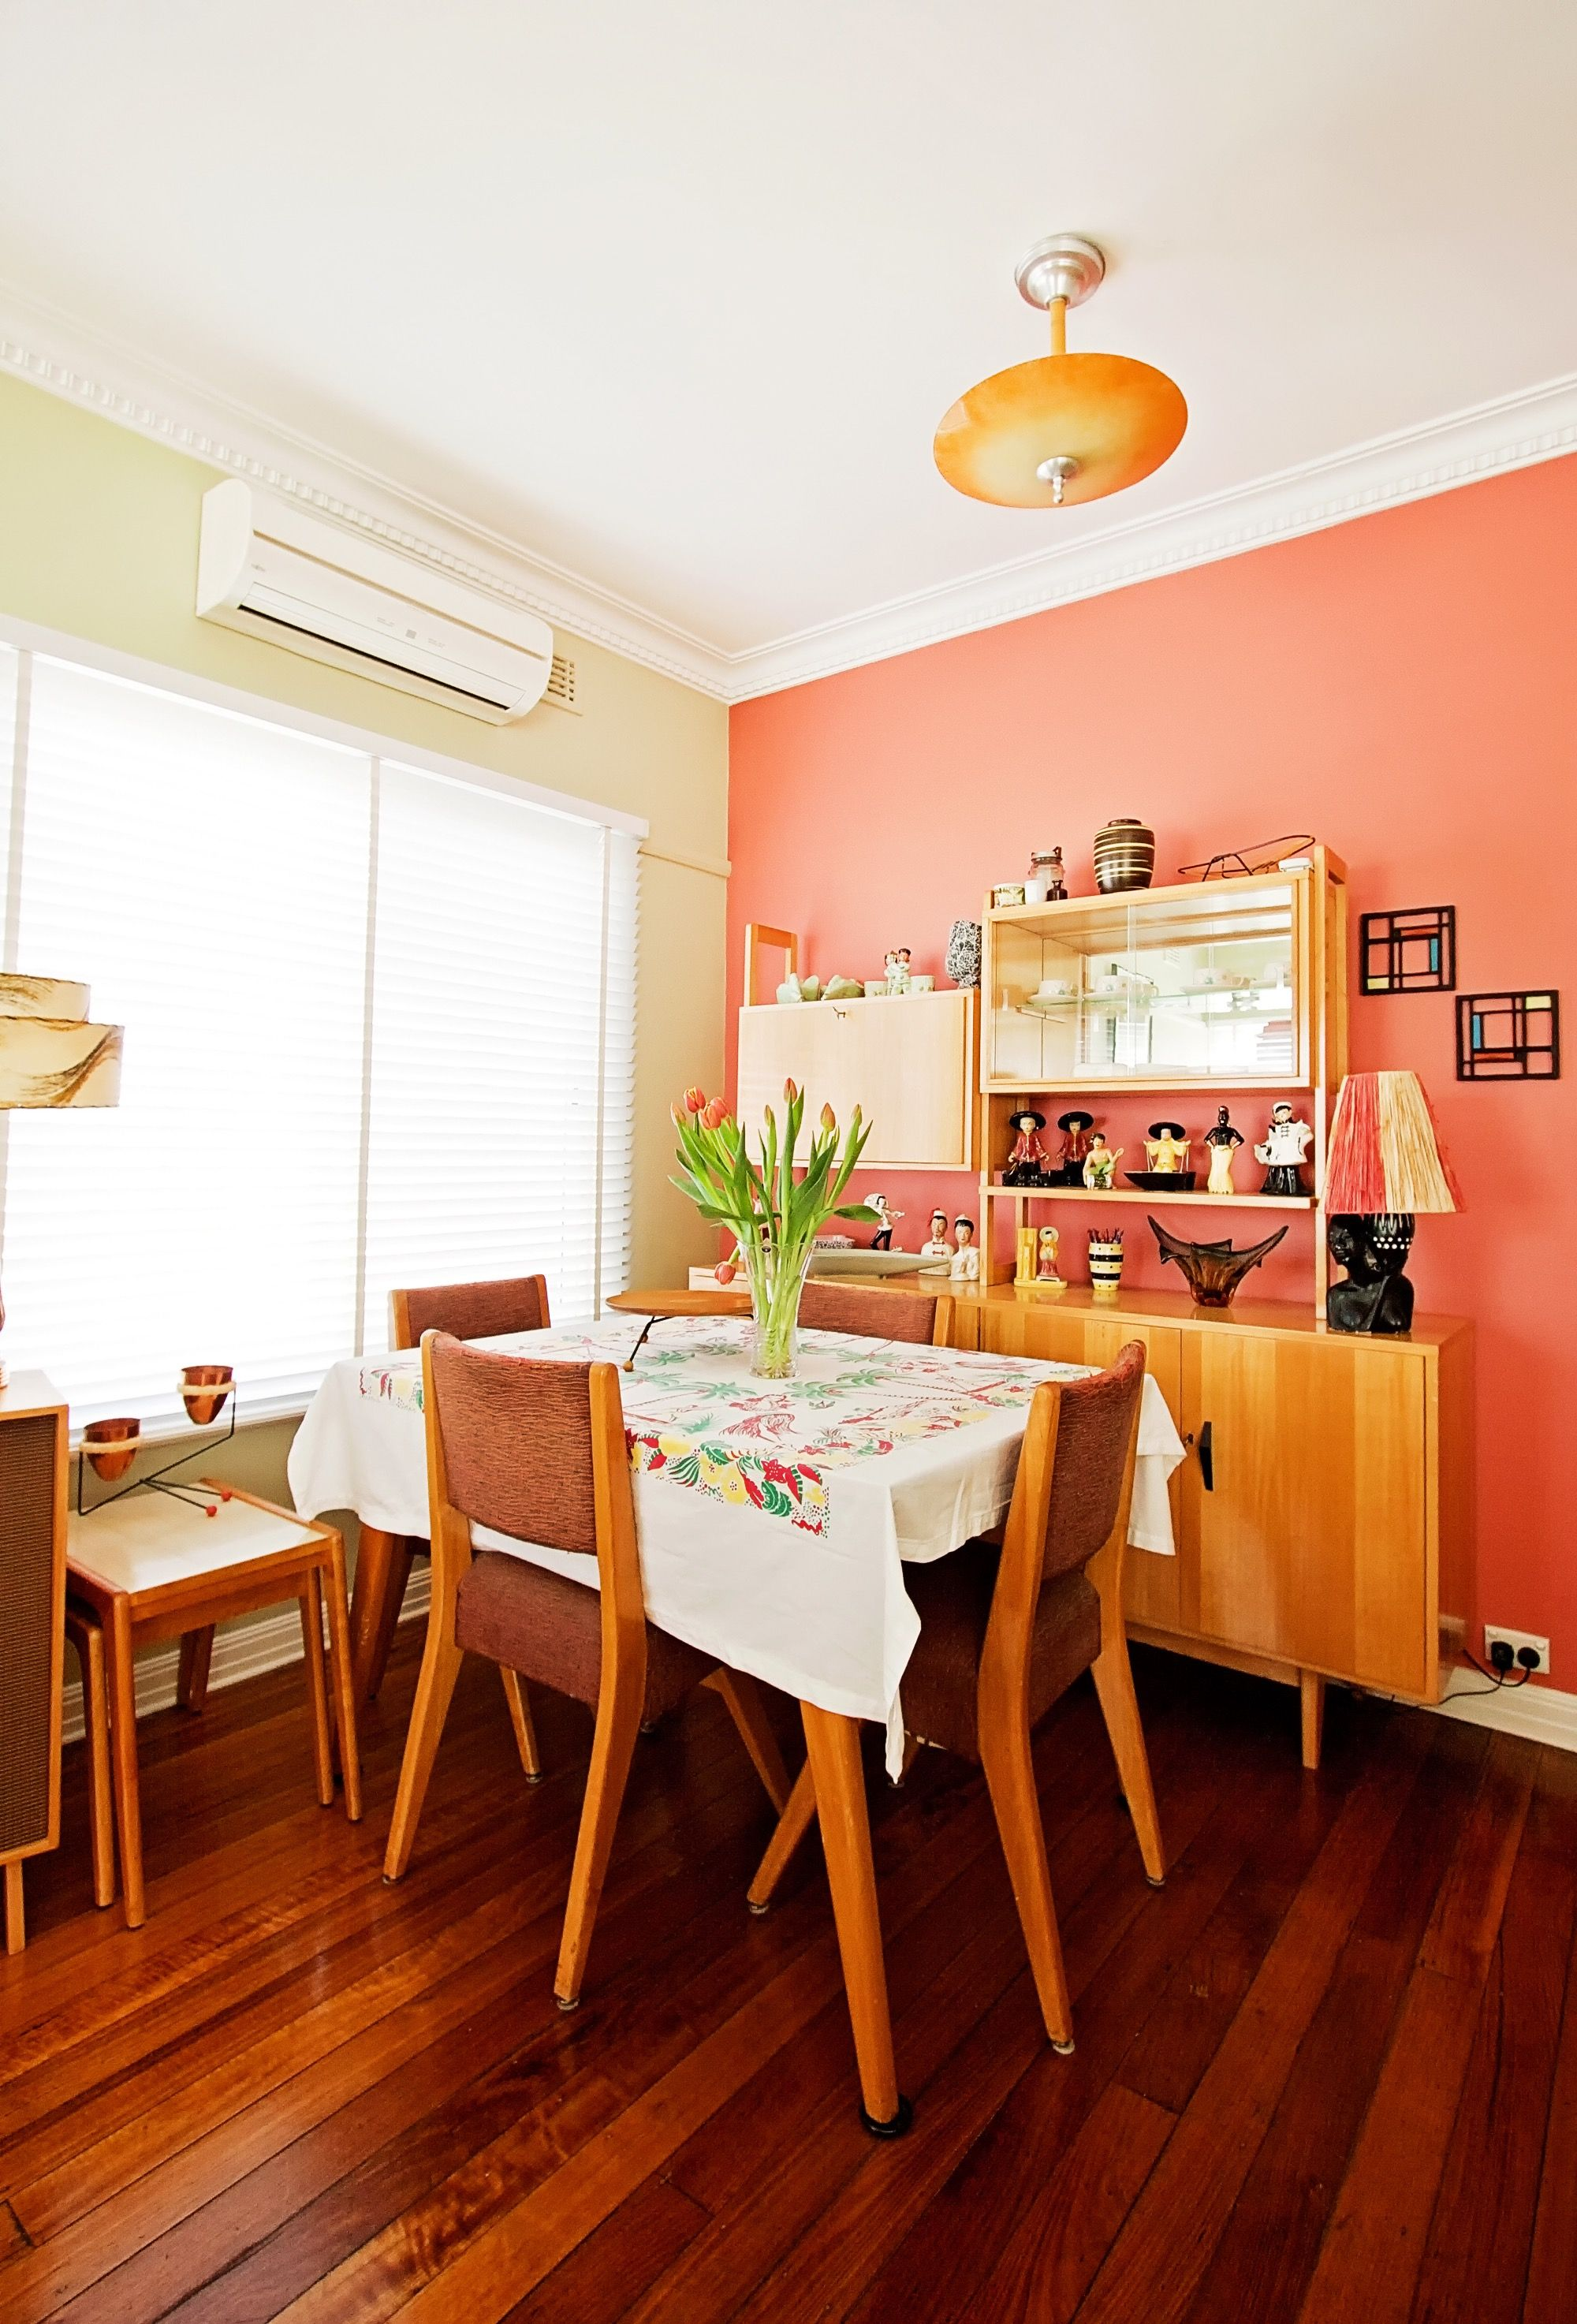 paint colors that match this apartment therapy photo sw 9009 subdued sienna sw 6883 raucous orange sw 7691 coral room small apartment room dining room walls paint colors that match this apartment